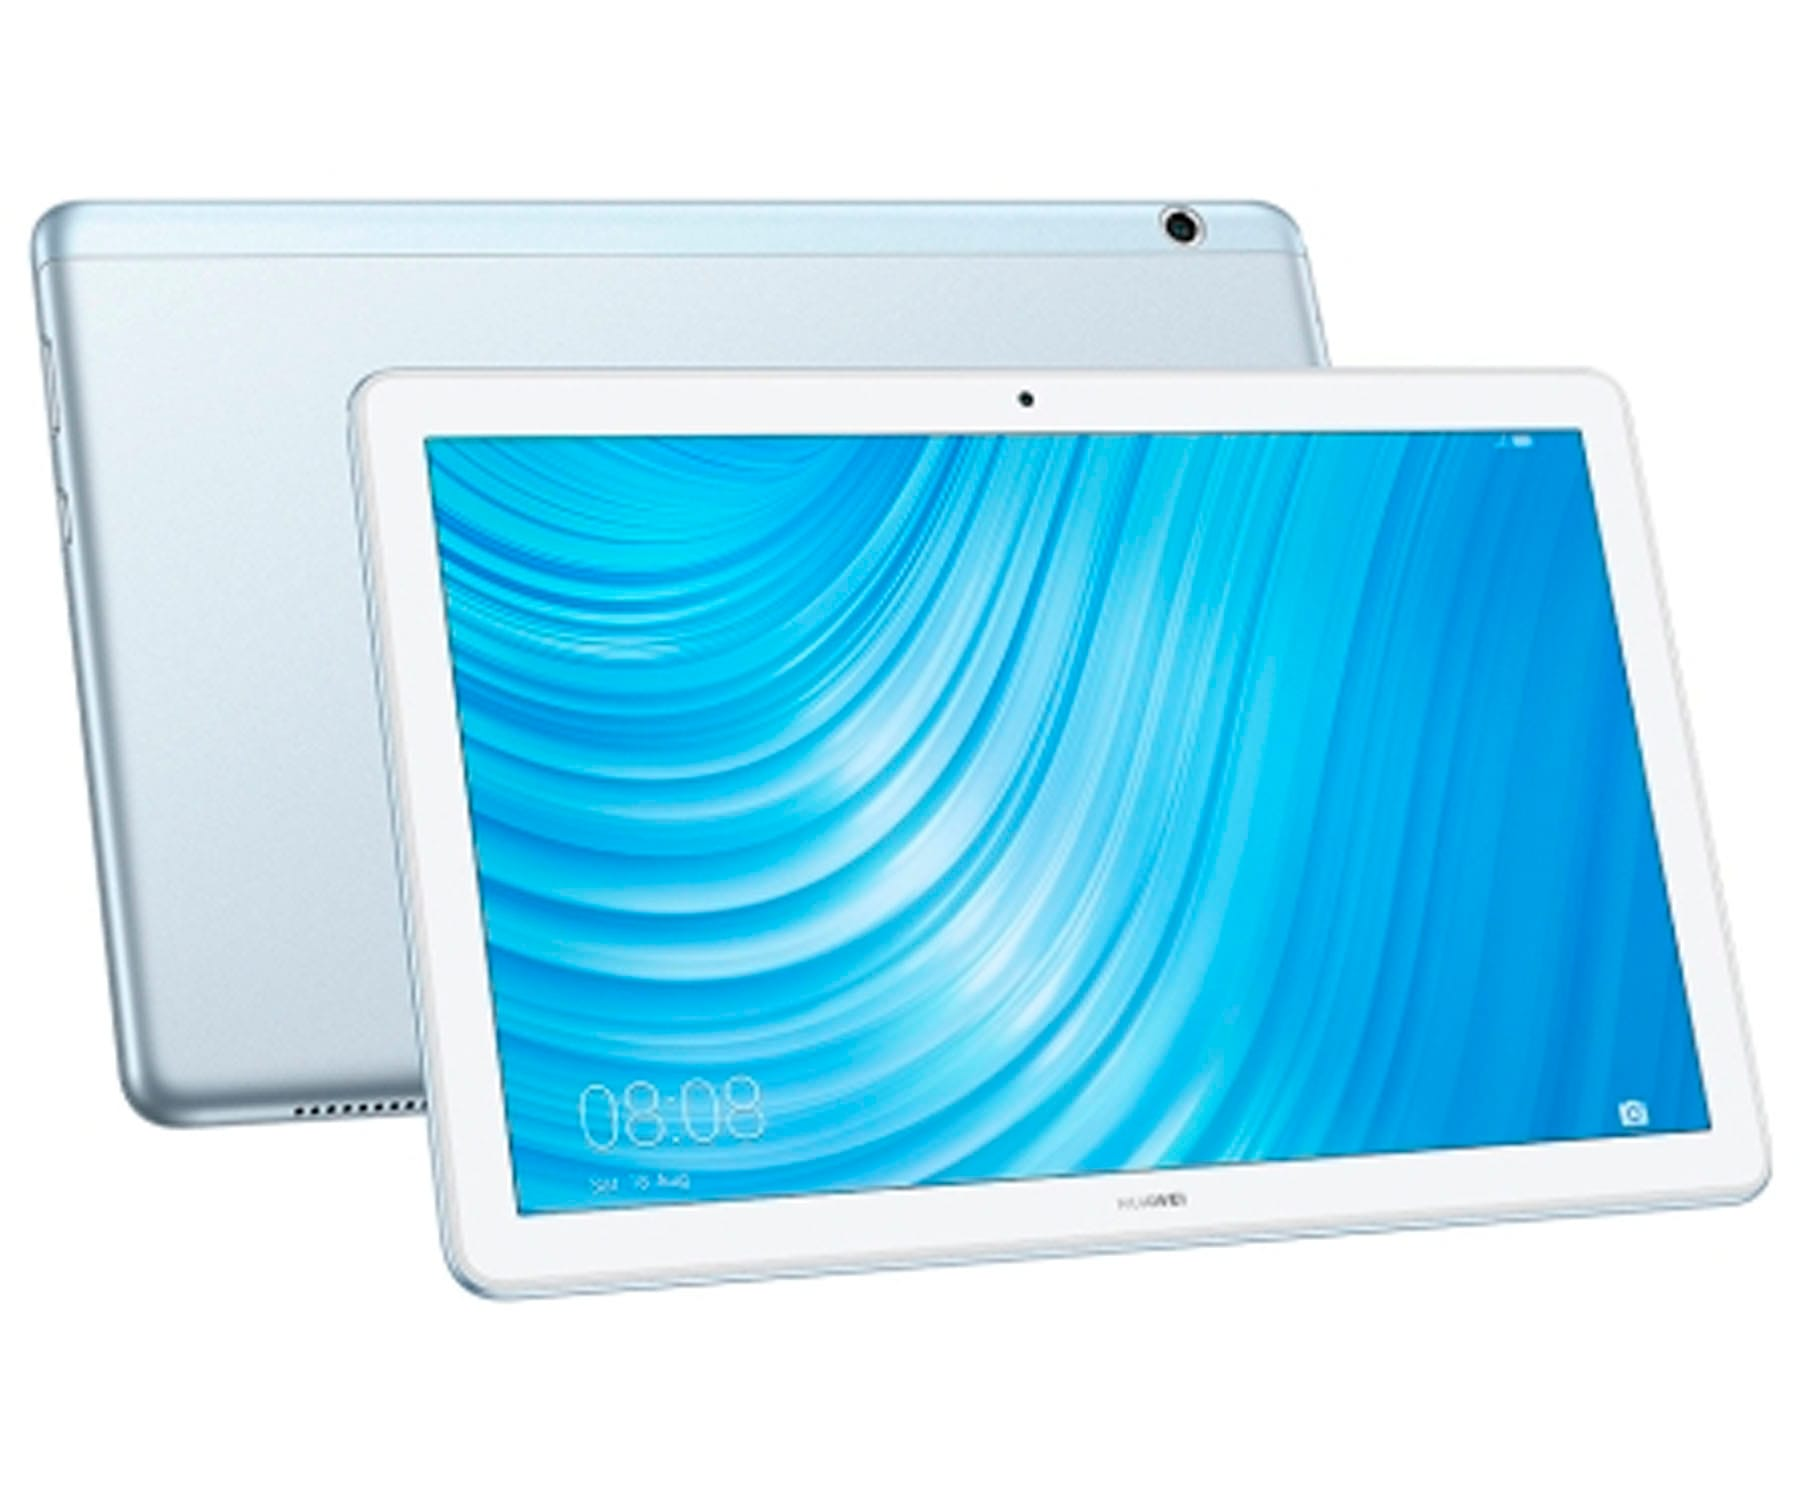 HUAWEI MEDIAPAD T5 AZUL TABLET WIFI 10.1'' FULLHD+ OCTACORE 32GB 3GB RAM CAM 5MP SELFIES 2MP